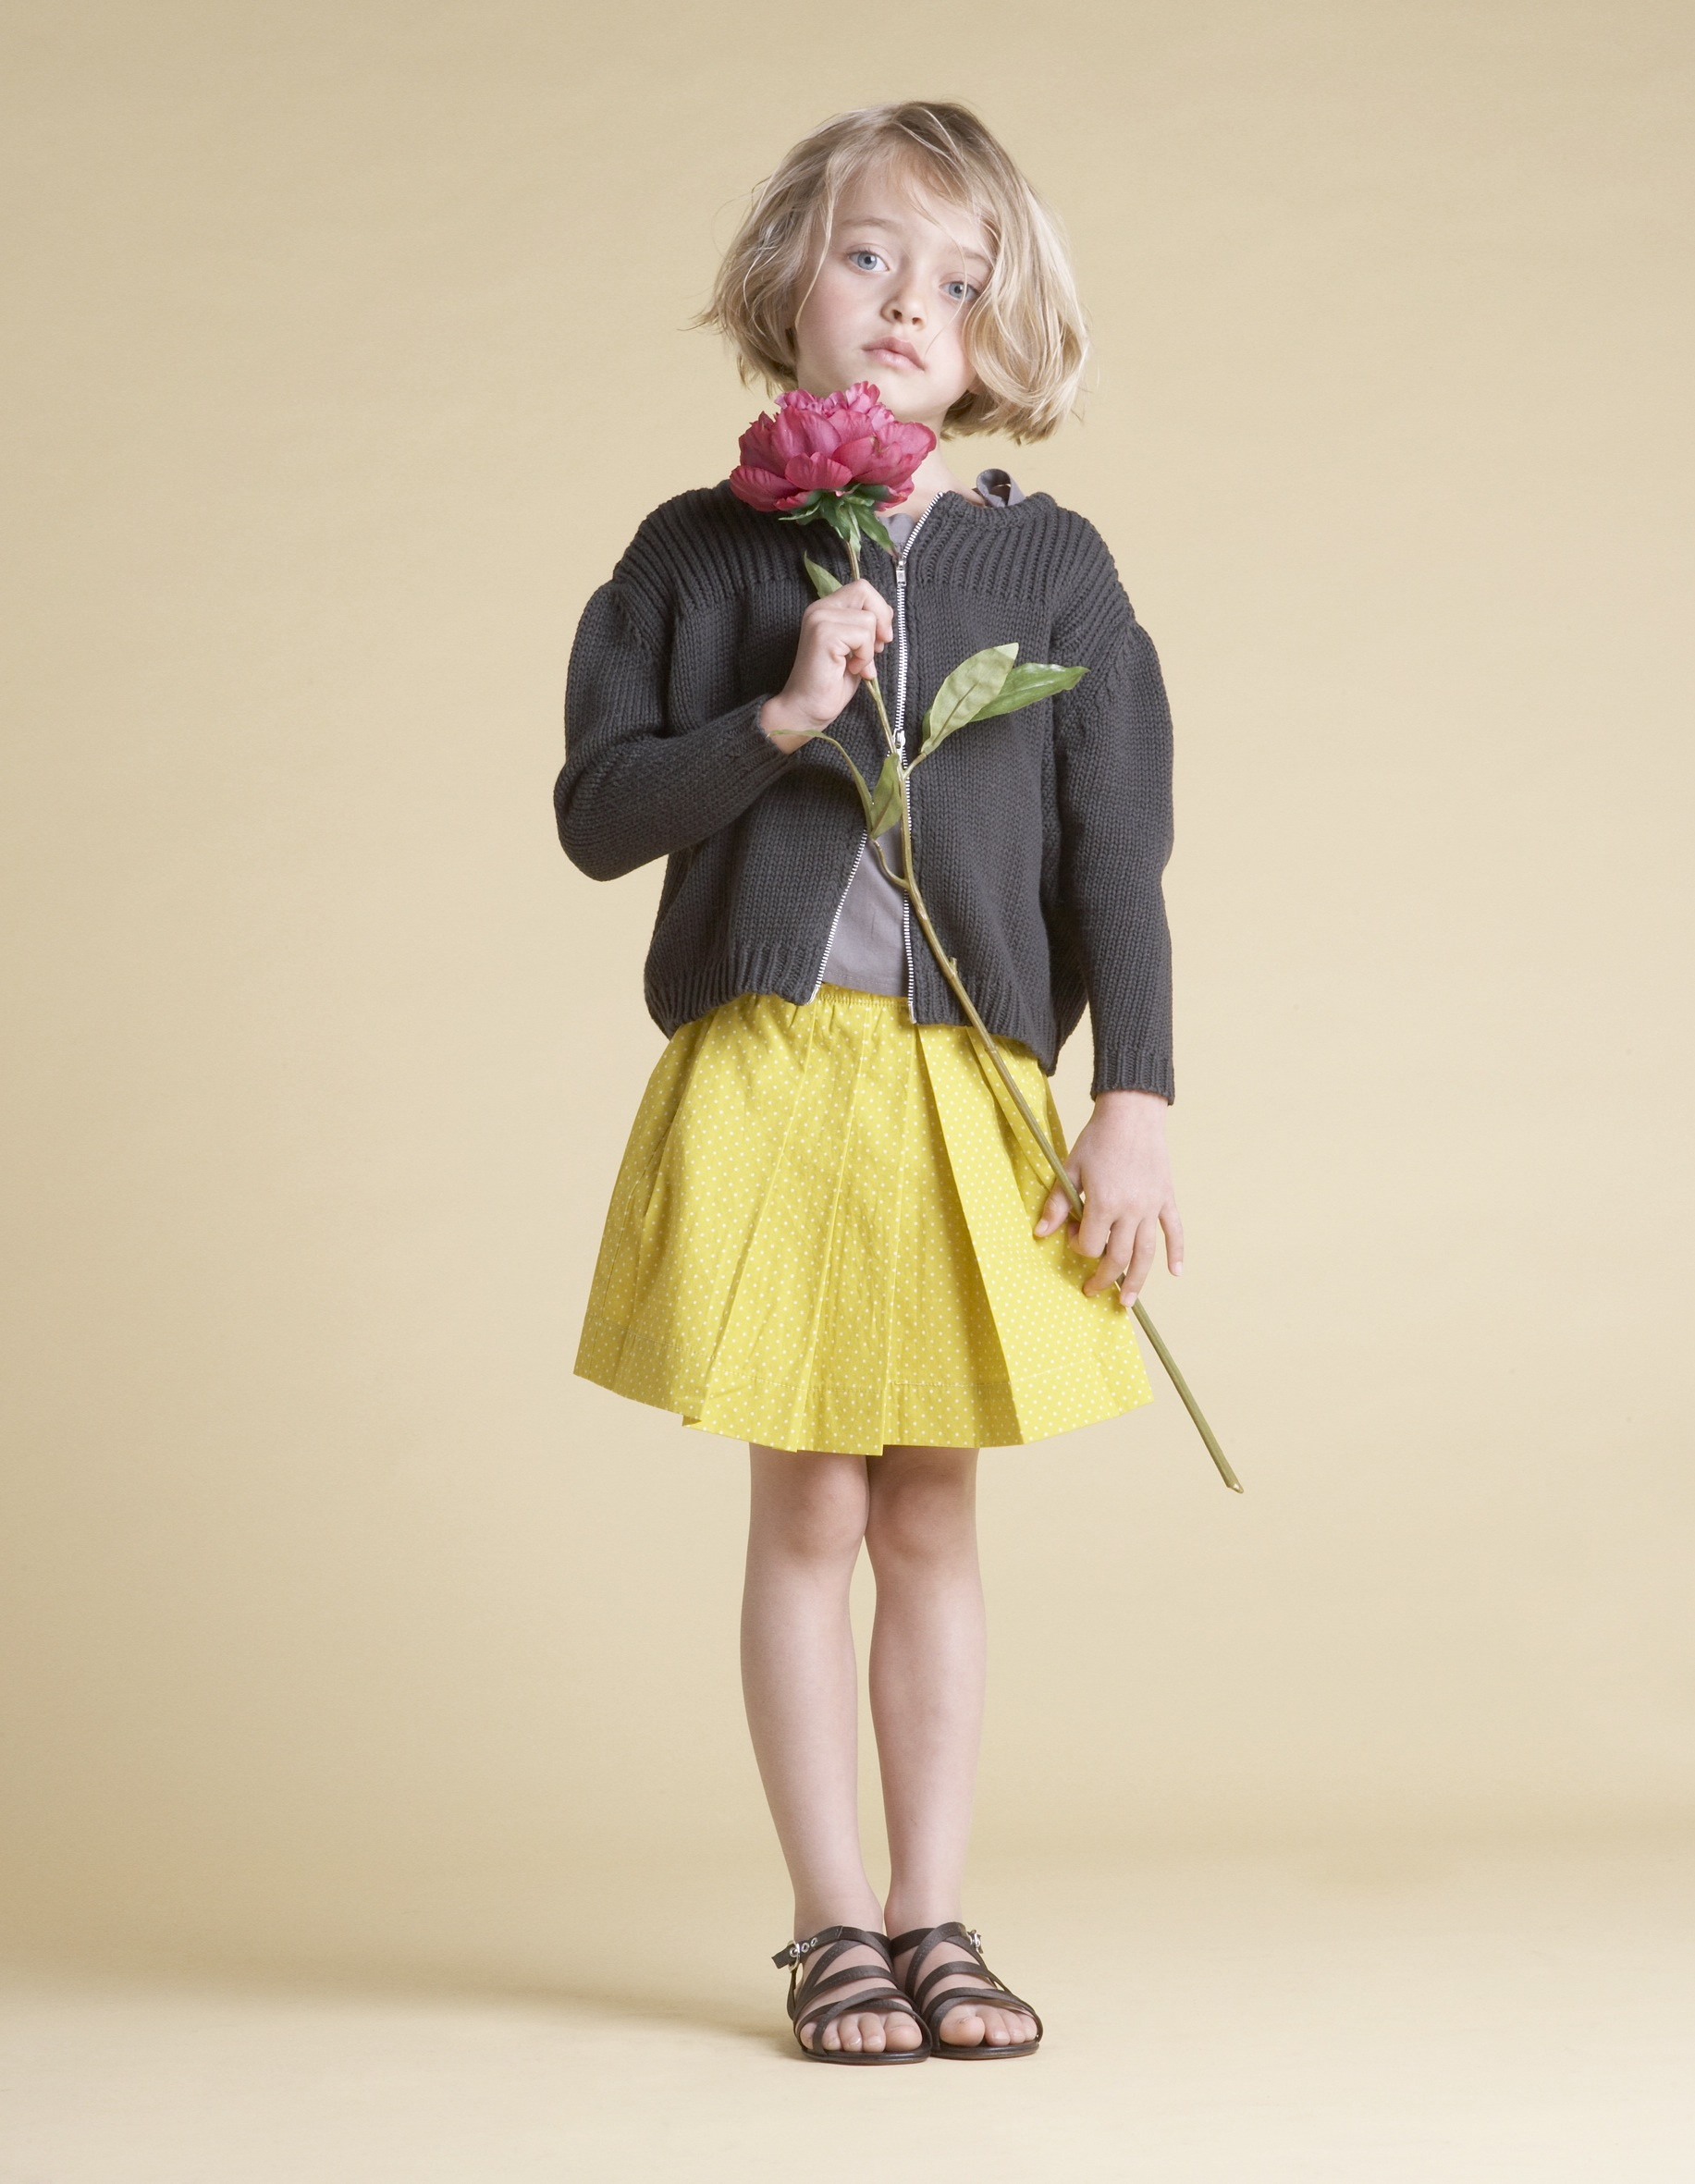 Caramel children's fashion for spring summer 2010